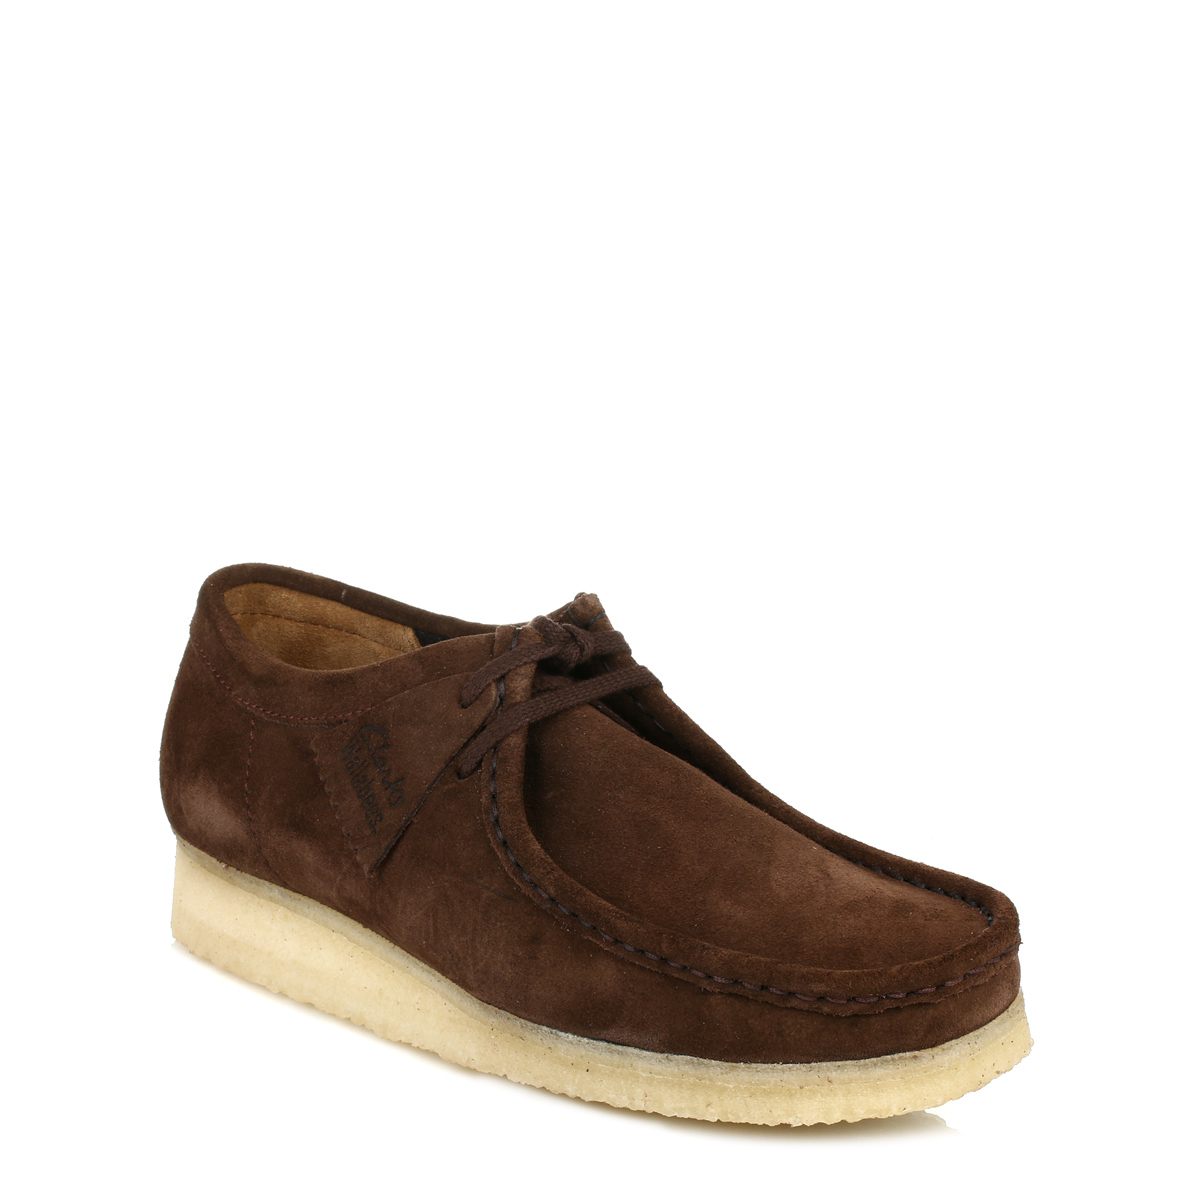 Clarks Mens Suede, Original Wallabees, 3 Colours, Suede, Mens Lace Up, Casual Moccasin Schuhes 0a2b5f